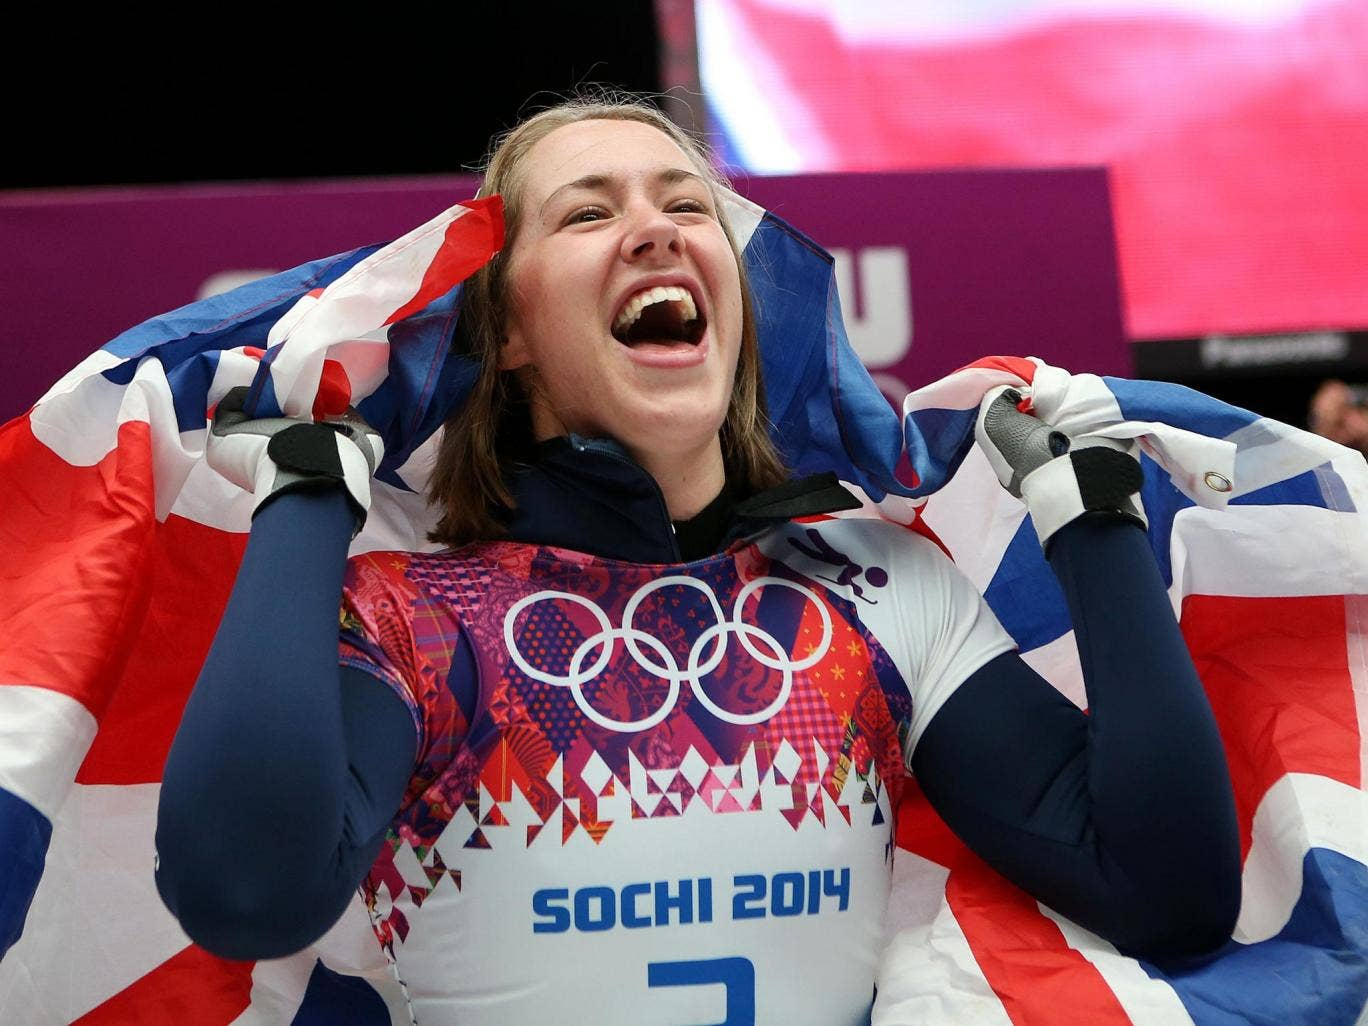 Great Britain's Lizzy Yarnold celebrates after winning Gold in the Women's Skeleton Final during the 2014 Sochi Olympic Games